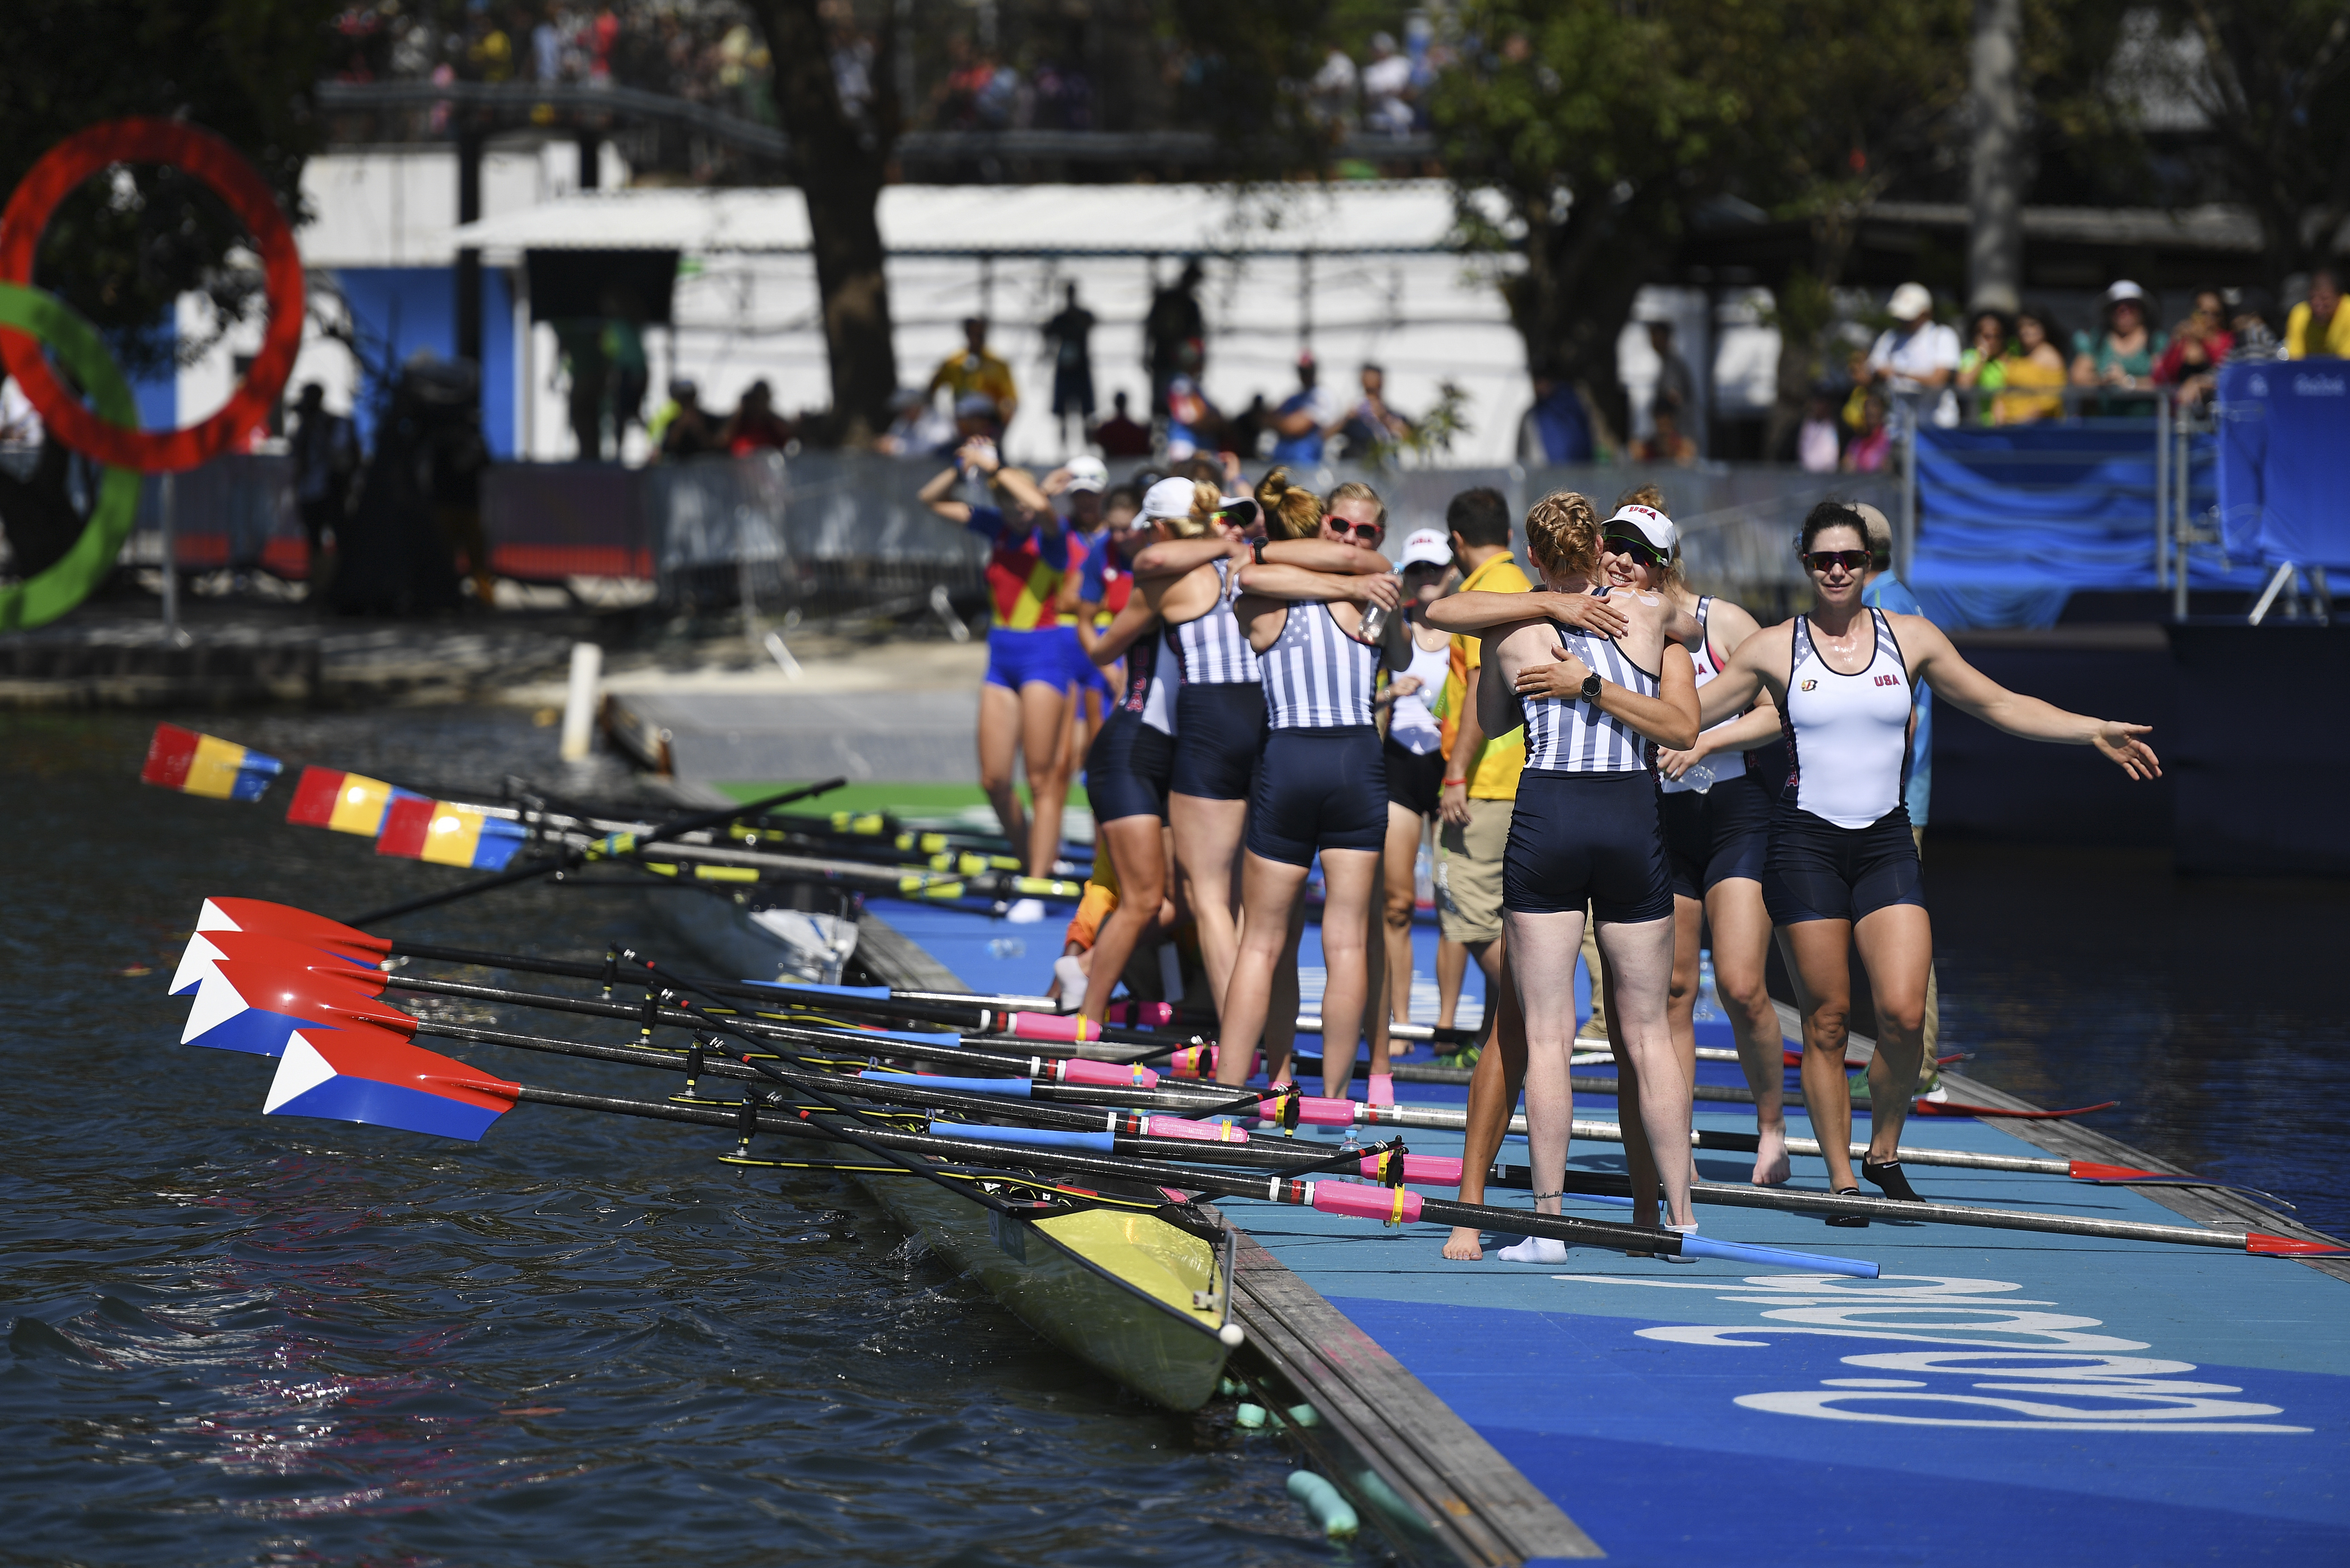 The U.S. women's rowing team celebrates after winning gold in the coxed eight final at Lagoa Stadium during the 2016 Summer Olympics in Rio de Janeiro, Brazil, Aug. 13, 2016. (James Hill/The New York Times)